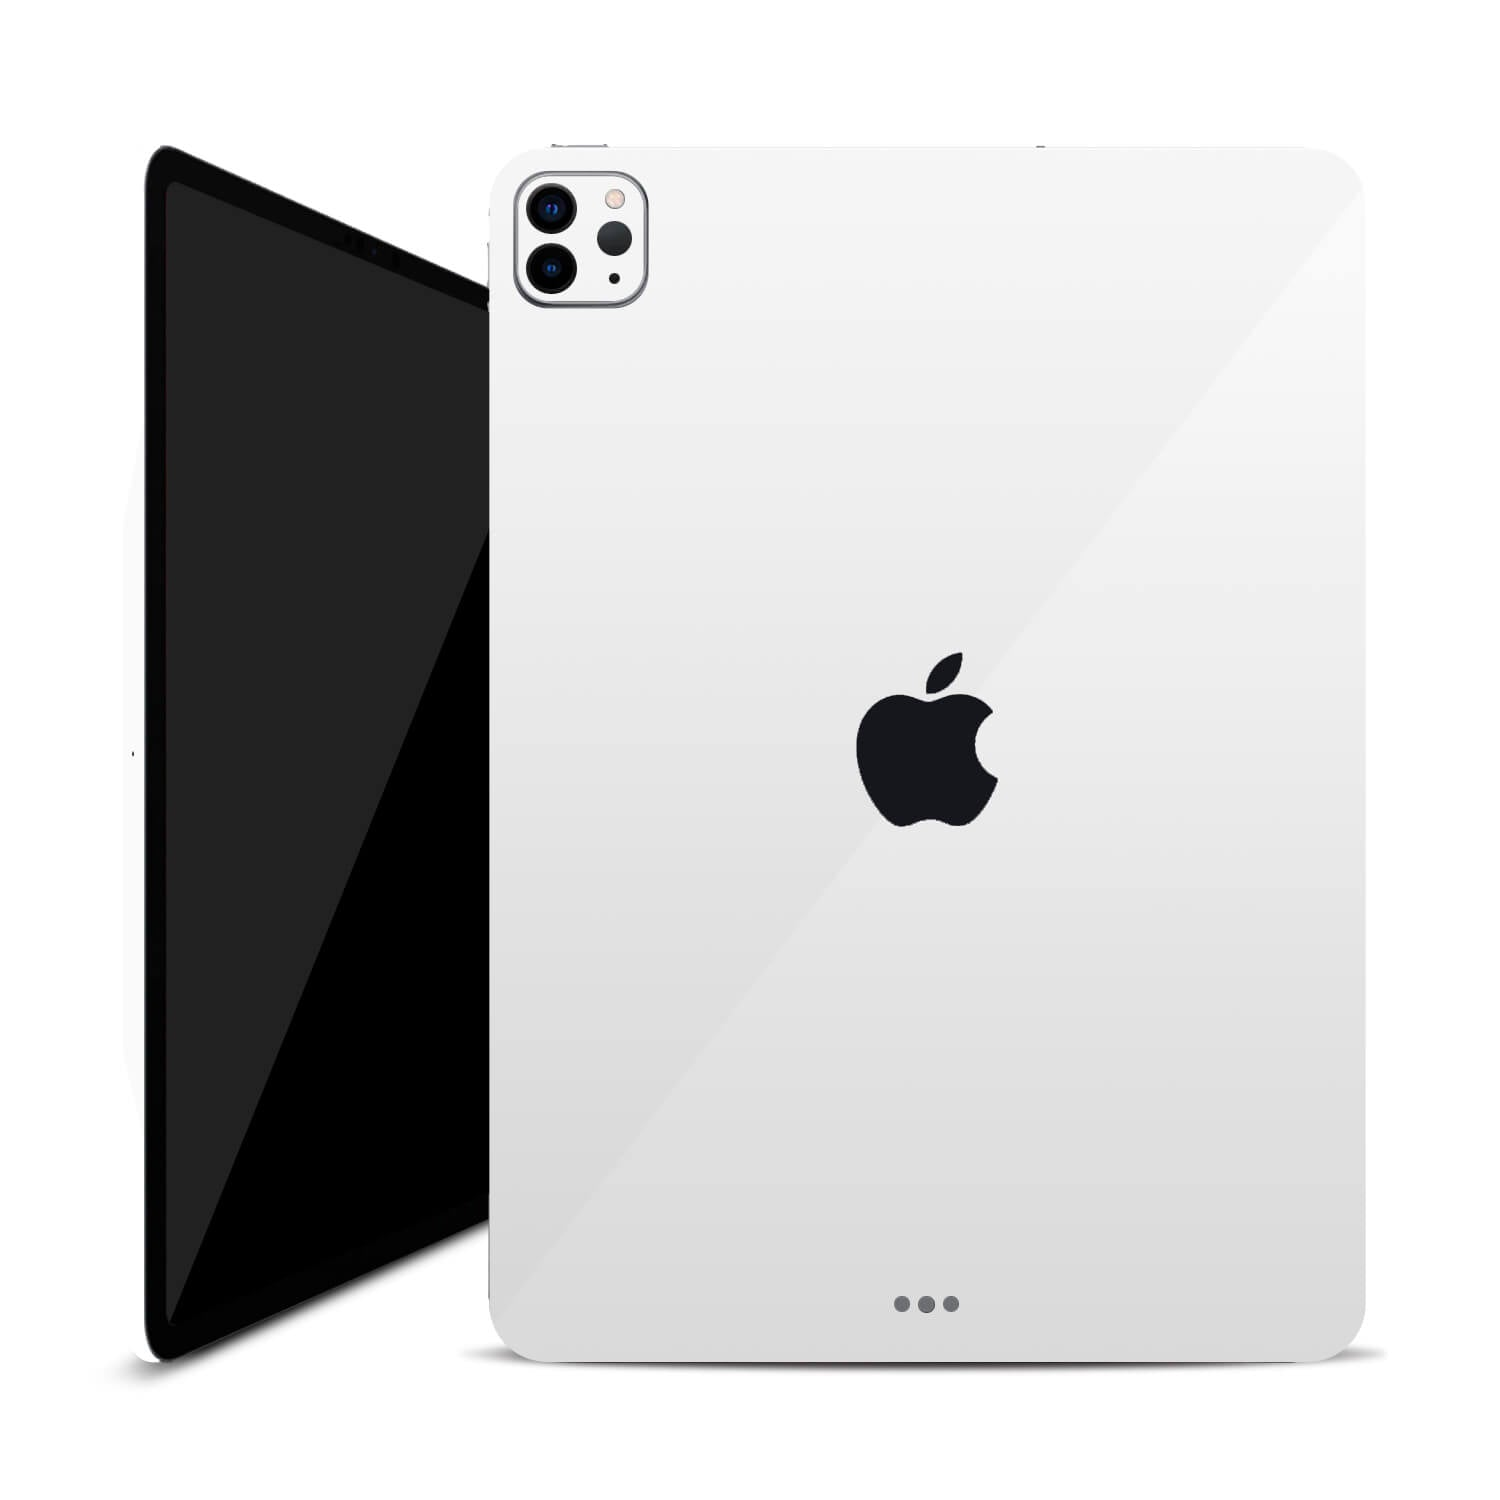 Ipad Pro 11 2020 Gen 2 Skins And Wraps Xtremeskins